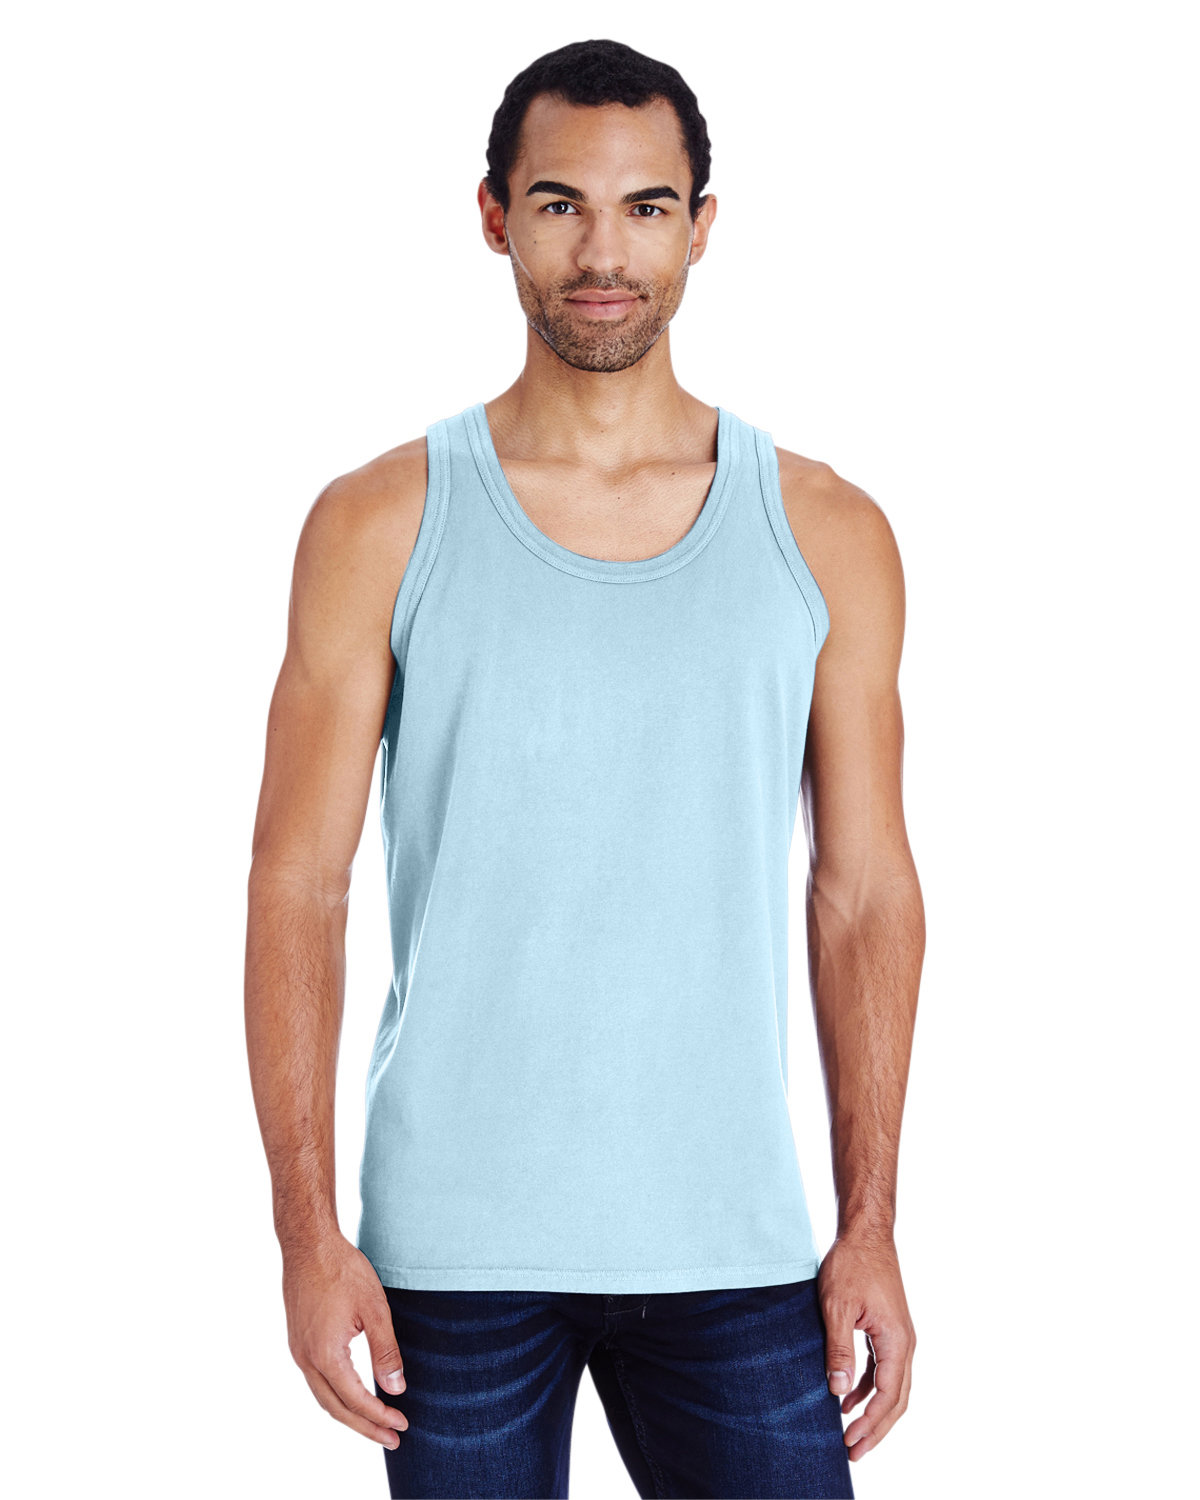 ComfortWash by Hanes Unisex Garment-Dyed Tank SOOTHING BLUE